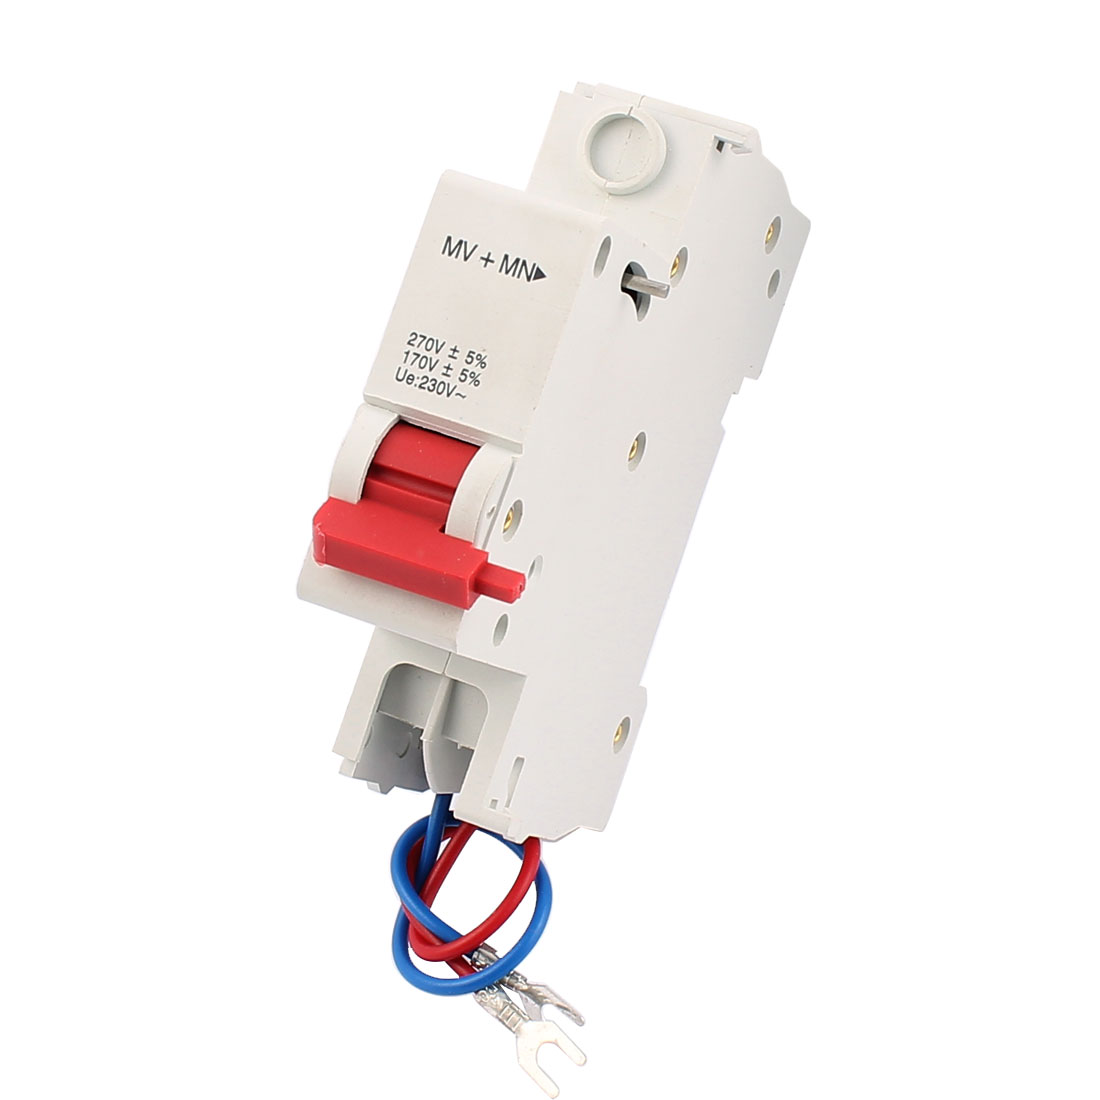 220V MV+MN Over Under Voltage Release Auxiliary Switch for DZ47S Circuit Breaker